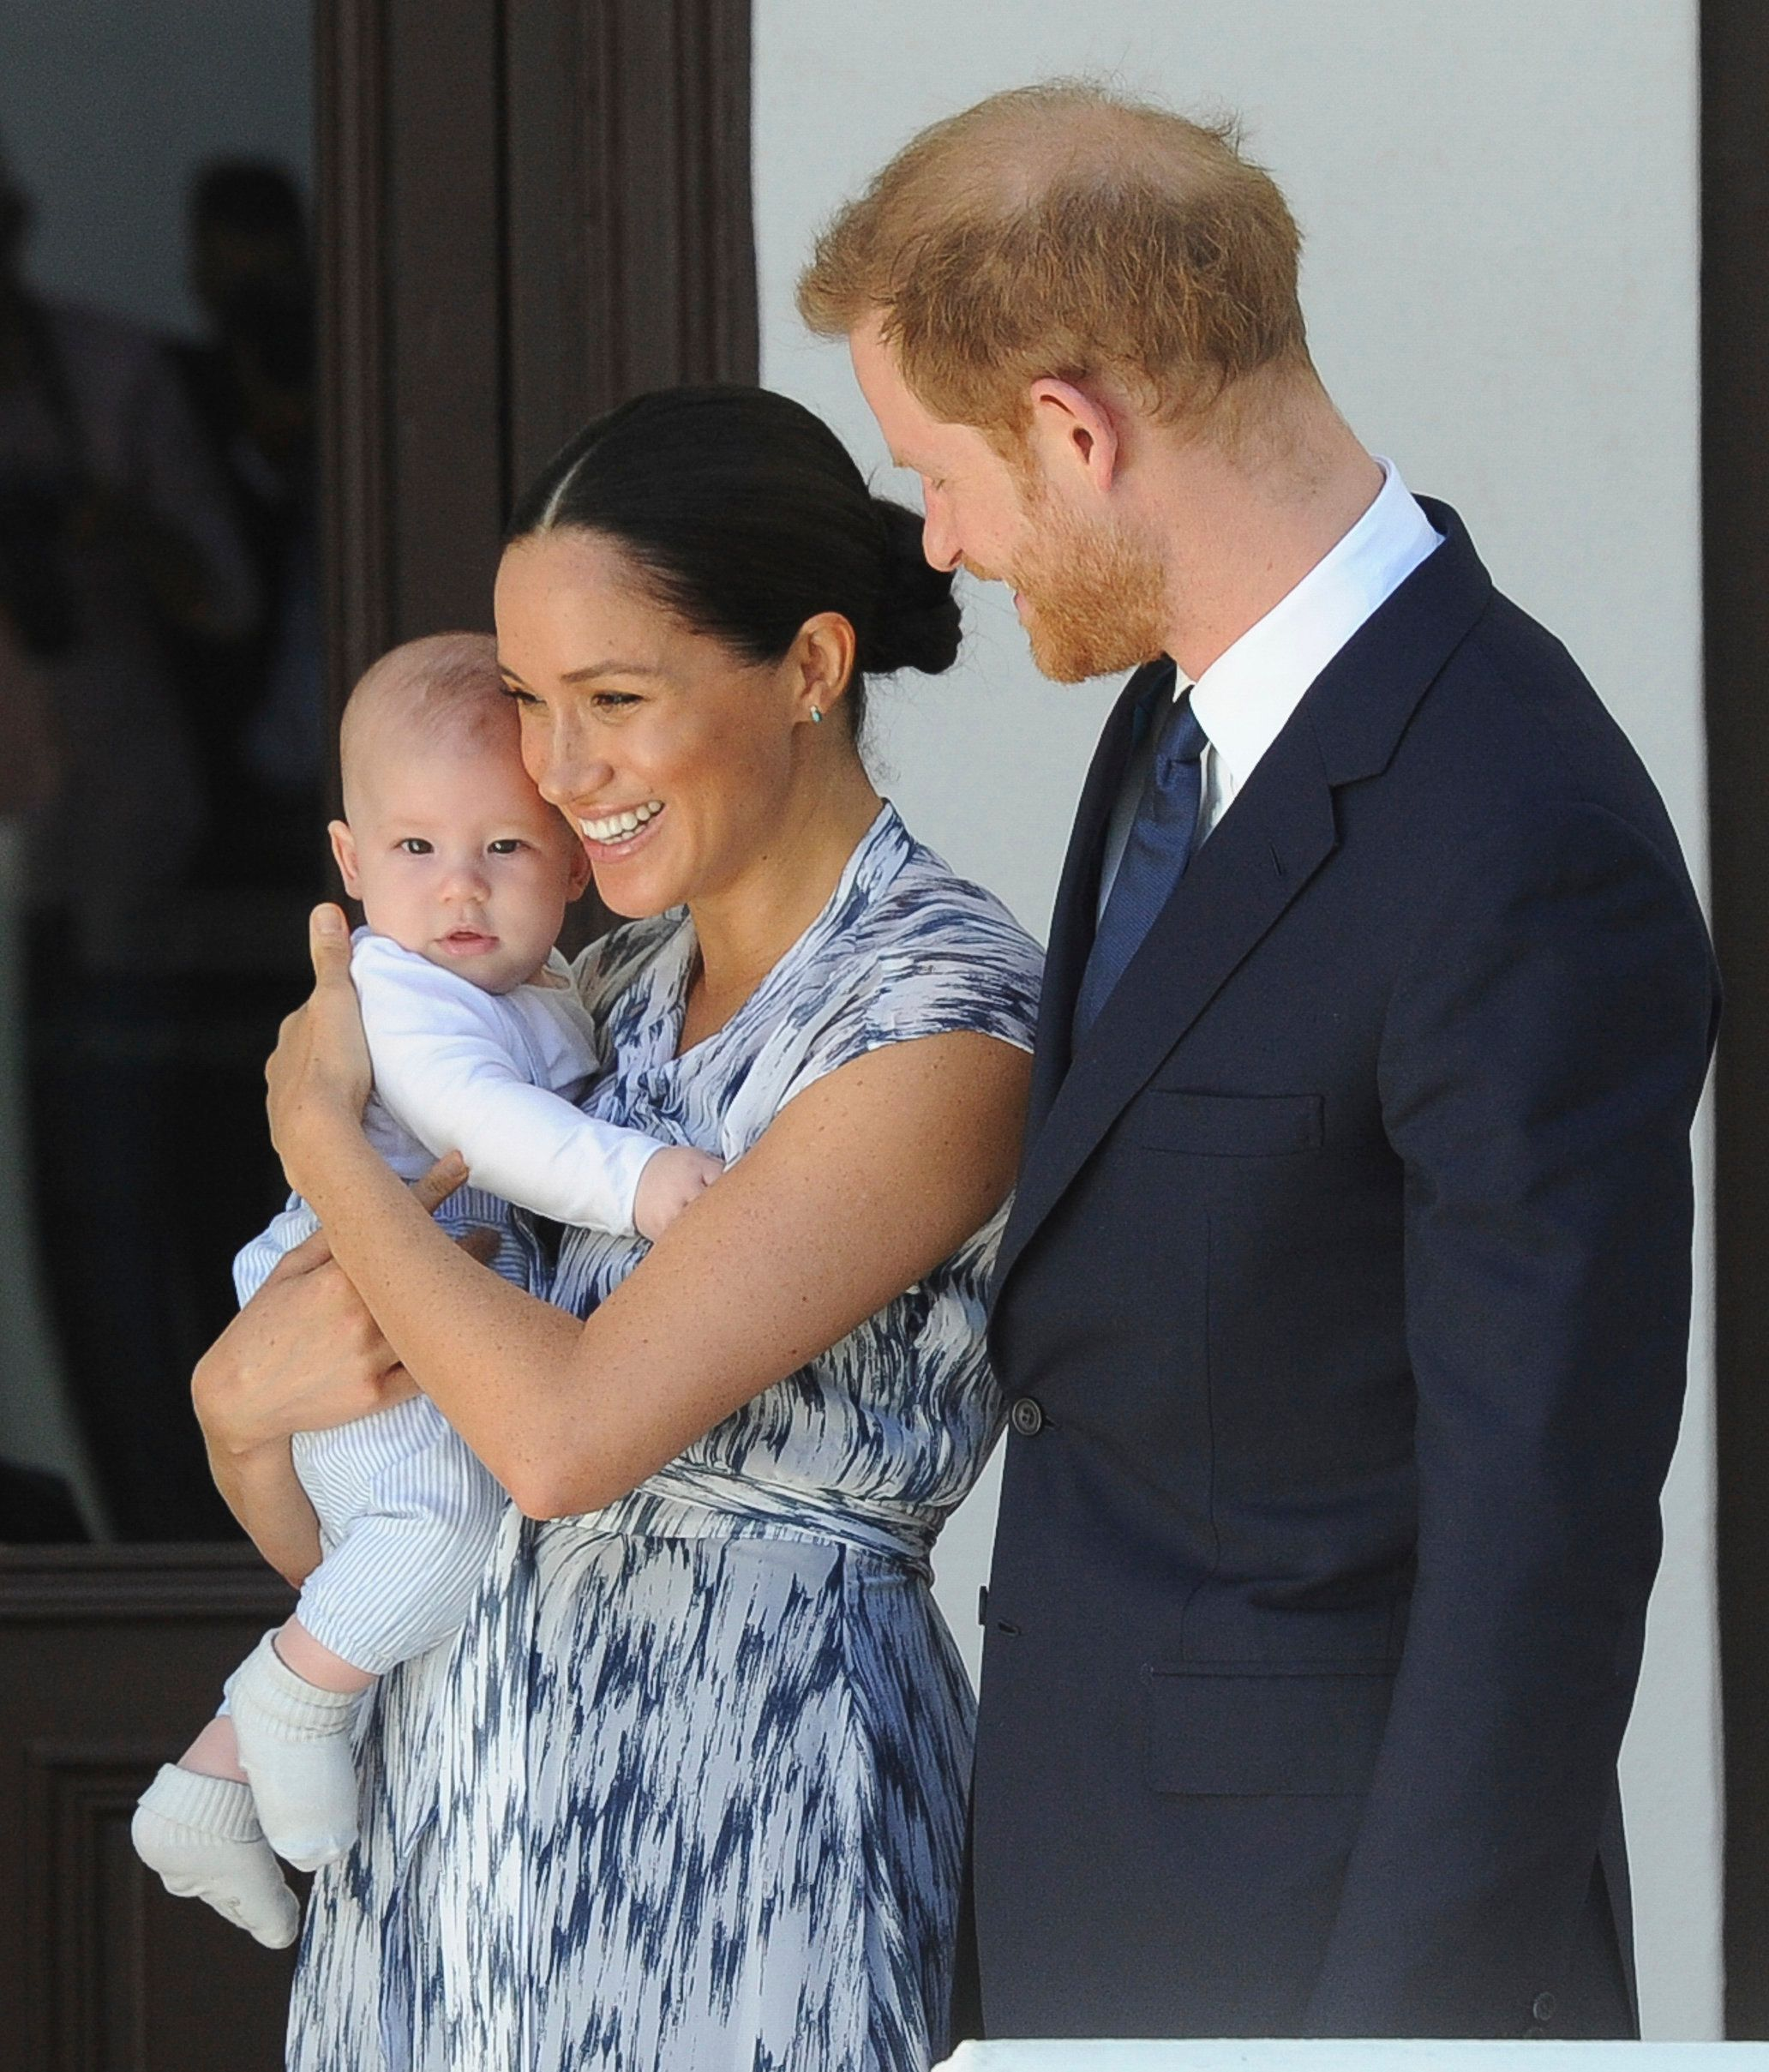 Prince Harry And Meghan Markle Announce They Are Expecting Their Second Baby